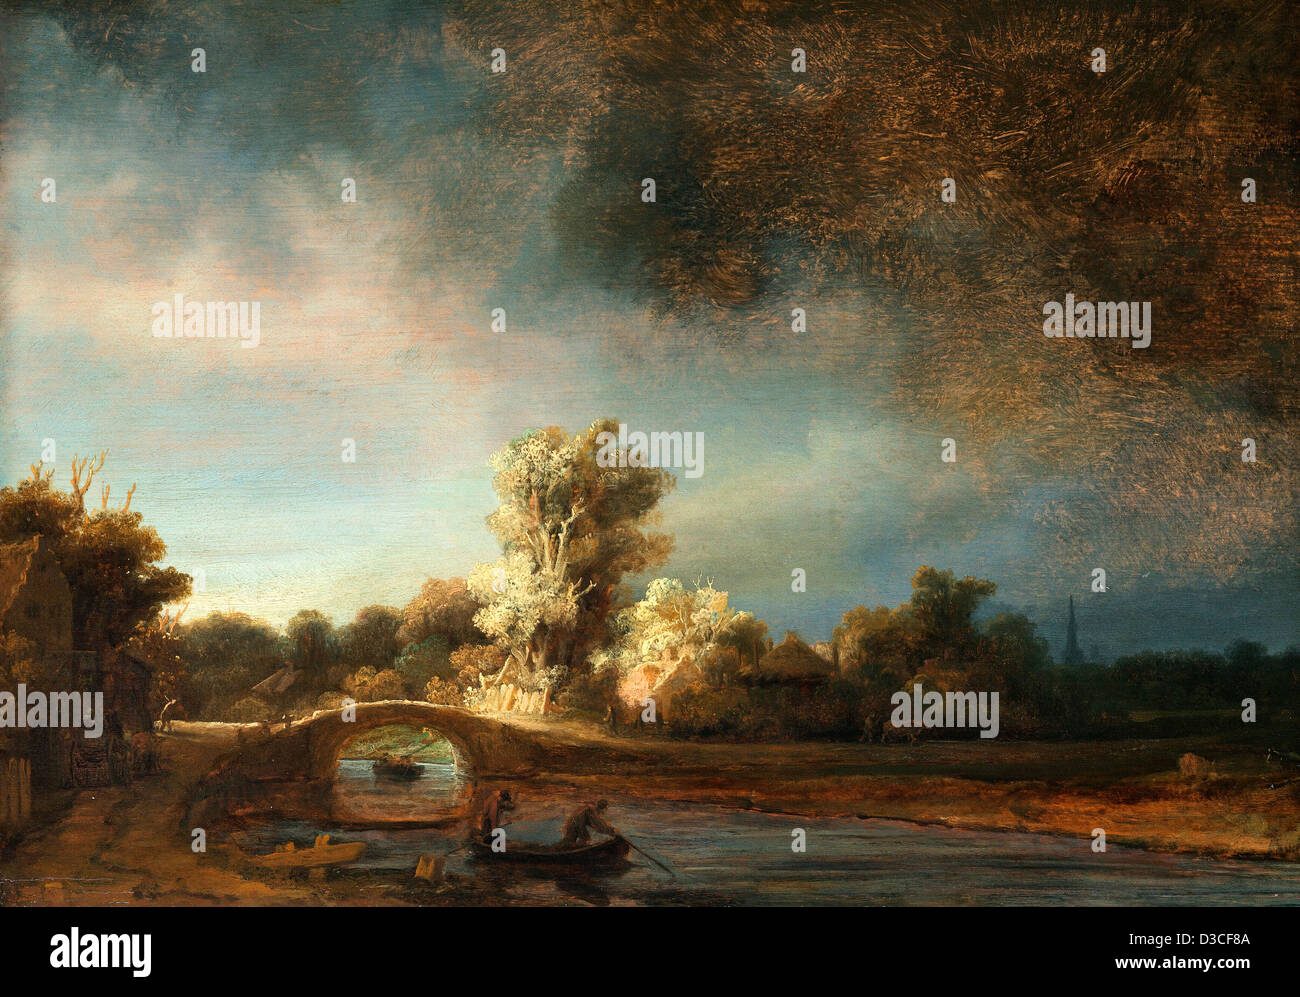 Rembrandt van Rijn, Landscape with a Stone Bridge. 1638 Oil on panel. Baroque. Rijksmuseum Amsterdam. - Stock Image